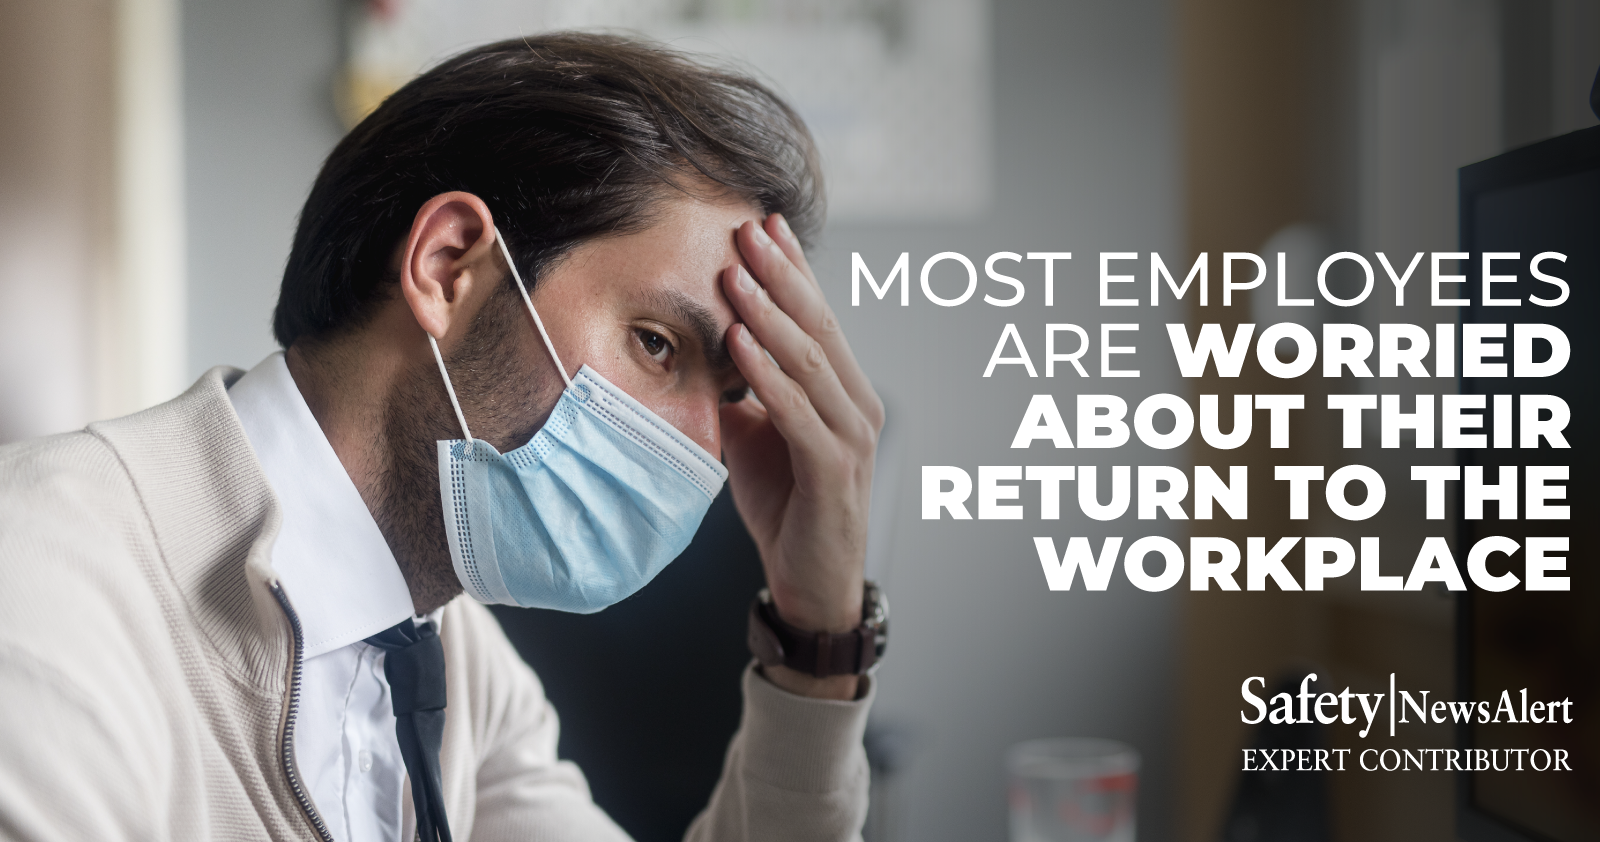 most employees are worried about their return to the workplace